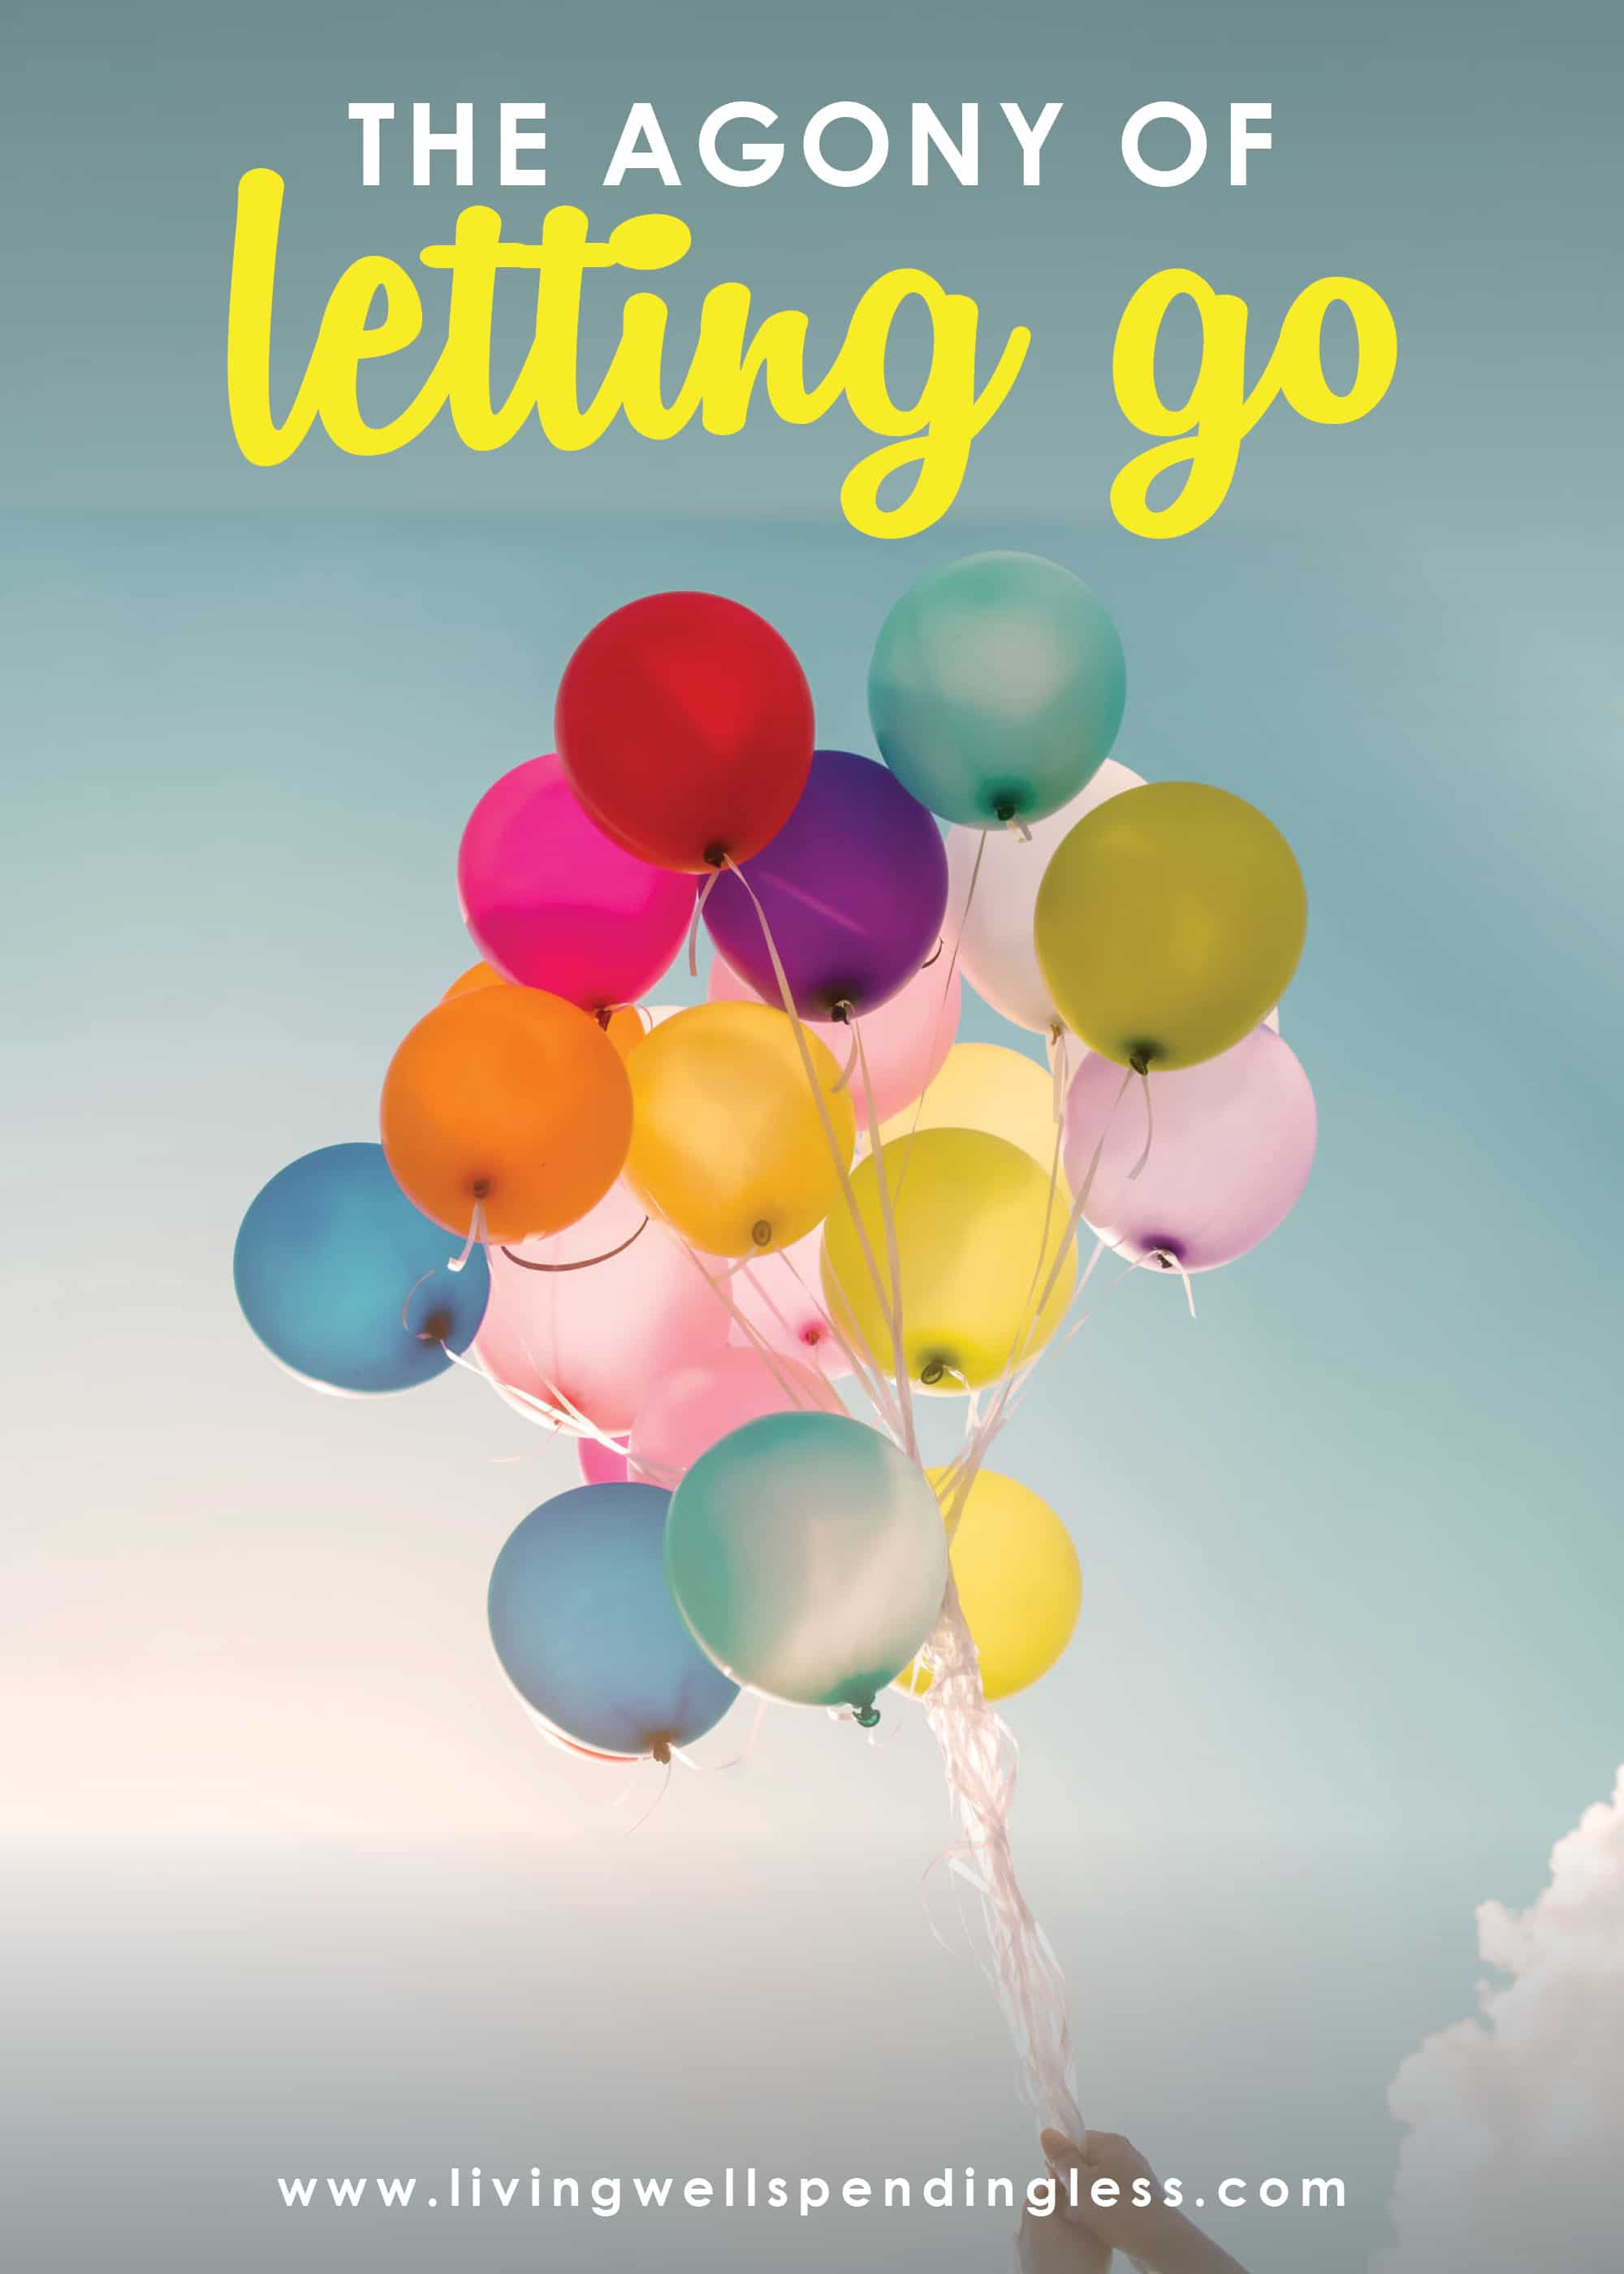 As parents, letting go can be so hard! Our kids need us to be there for them, but they also need us to prepare them for life without them. Don't miss this post that shares how to cope with the agony of letting go. #parenting #parents #raisingchildren #livingwellspendingless #ruthsoukup